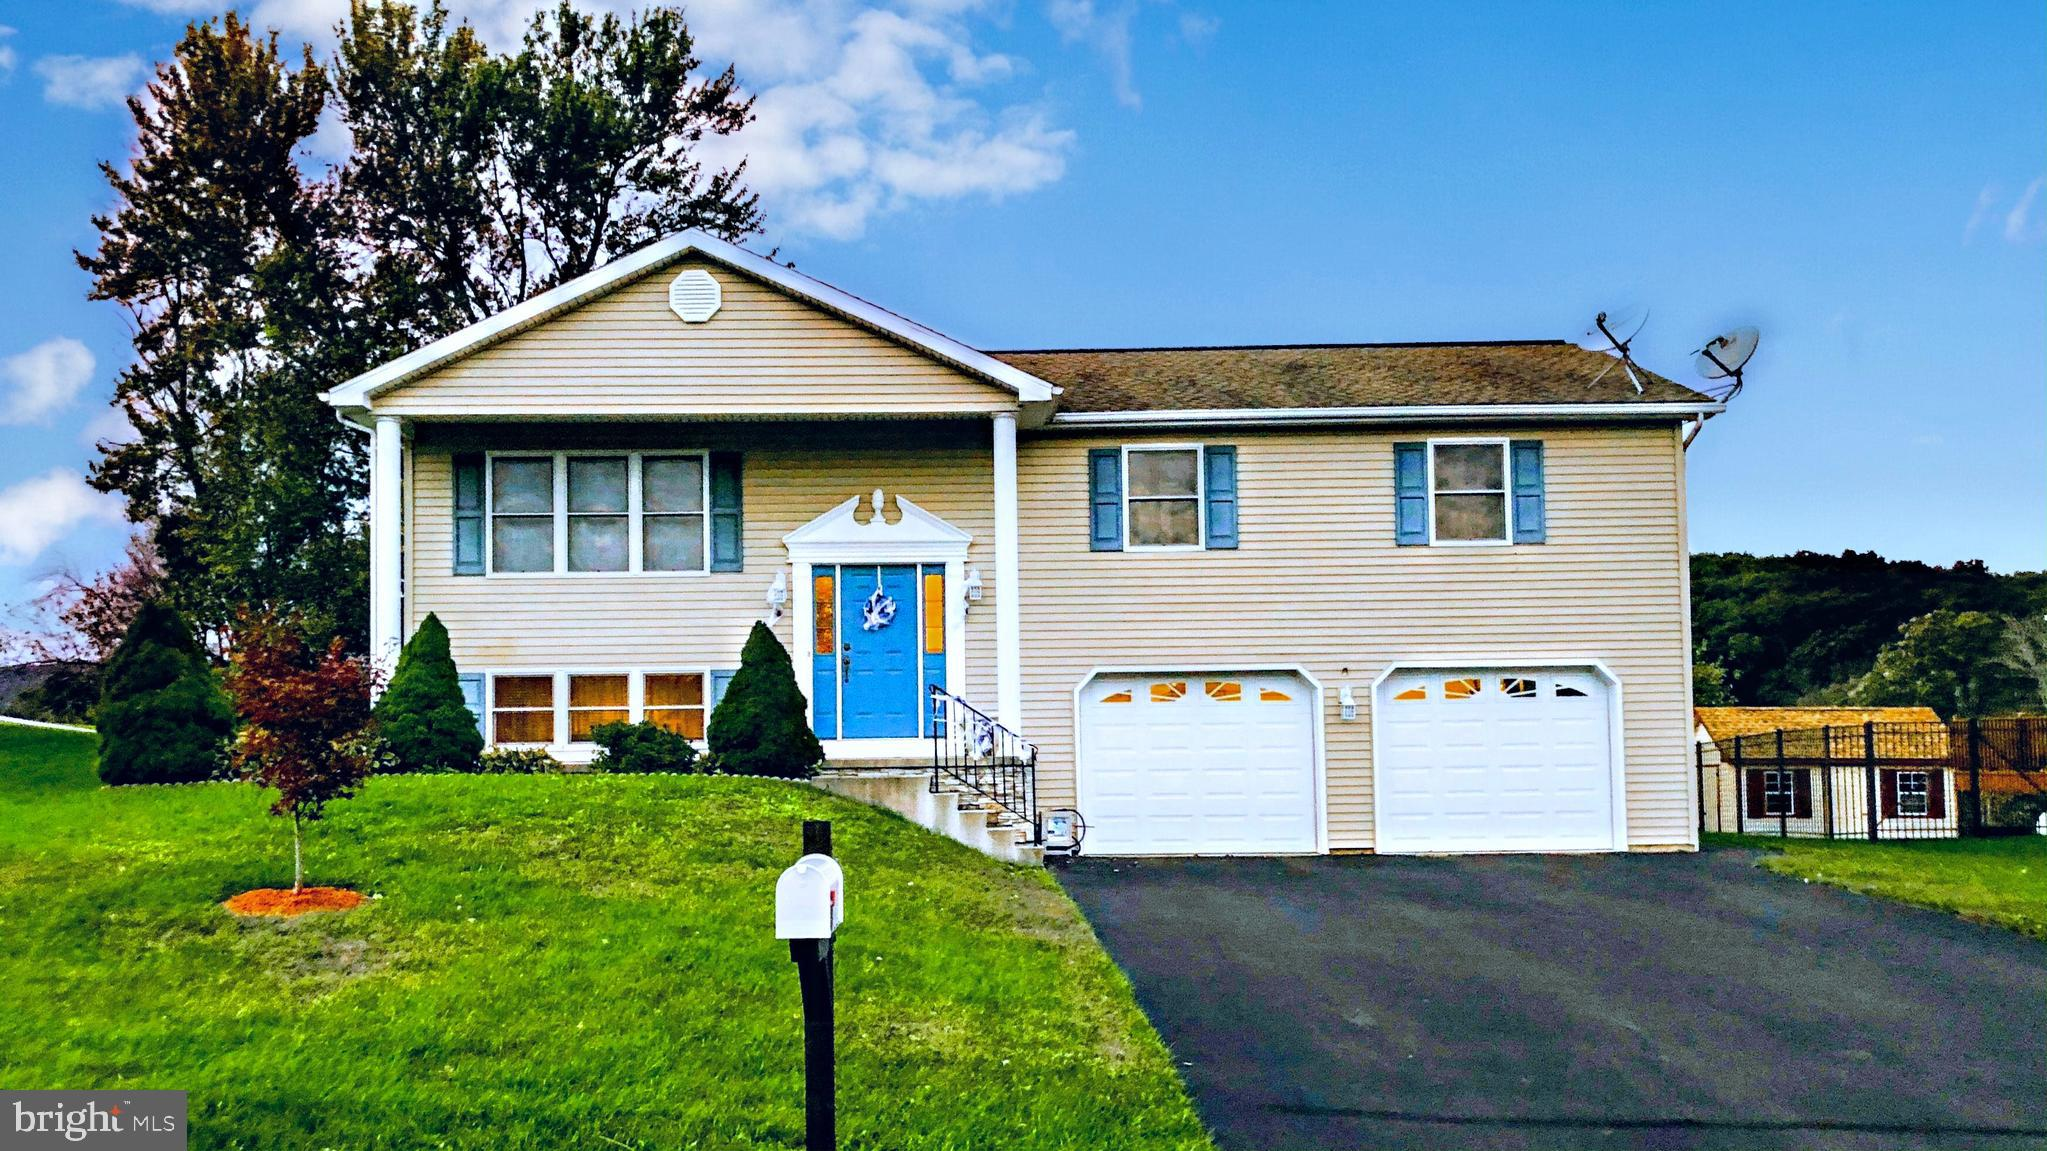 145 WOODRING ROAD, DRUMS, PA 18222